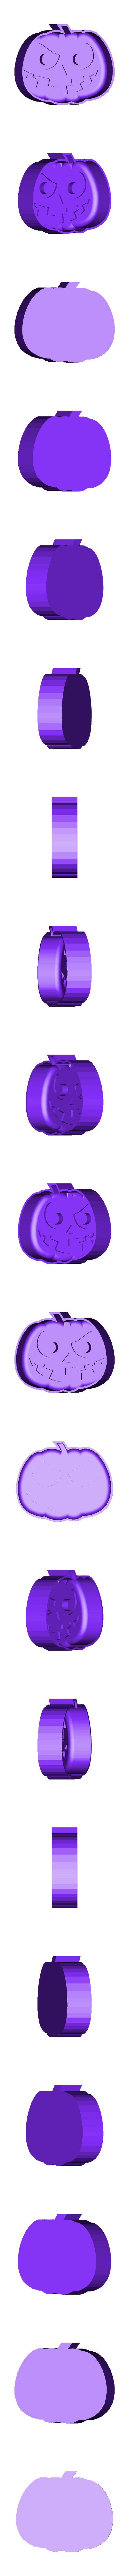 Pumpkin-1.stl Download free STL file Scary Halloween Pumpkin Molds • 3D printable design, crzldesign